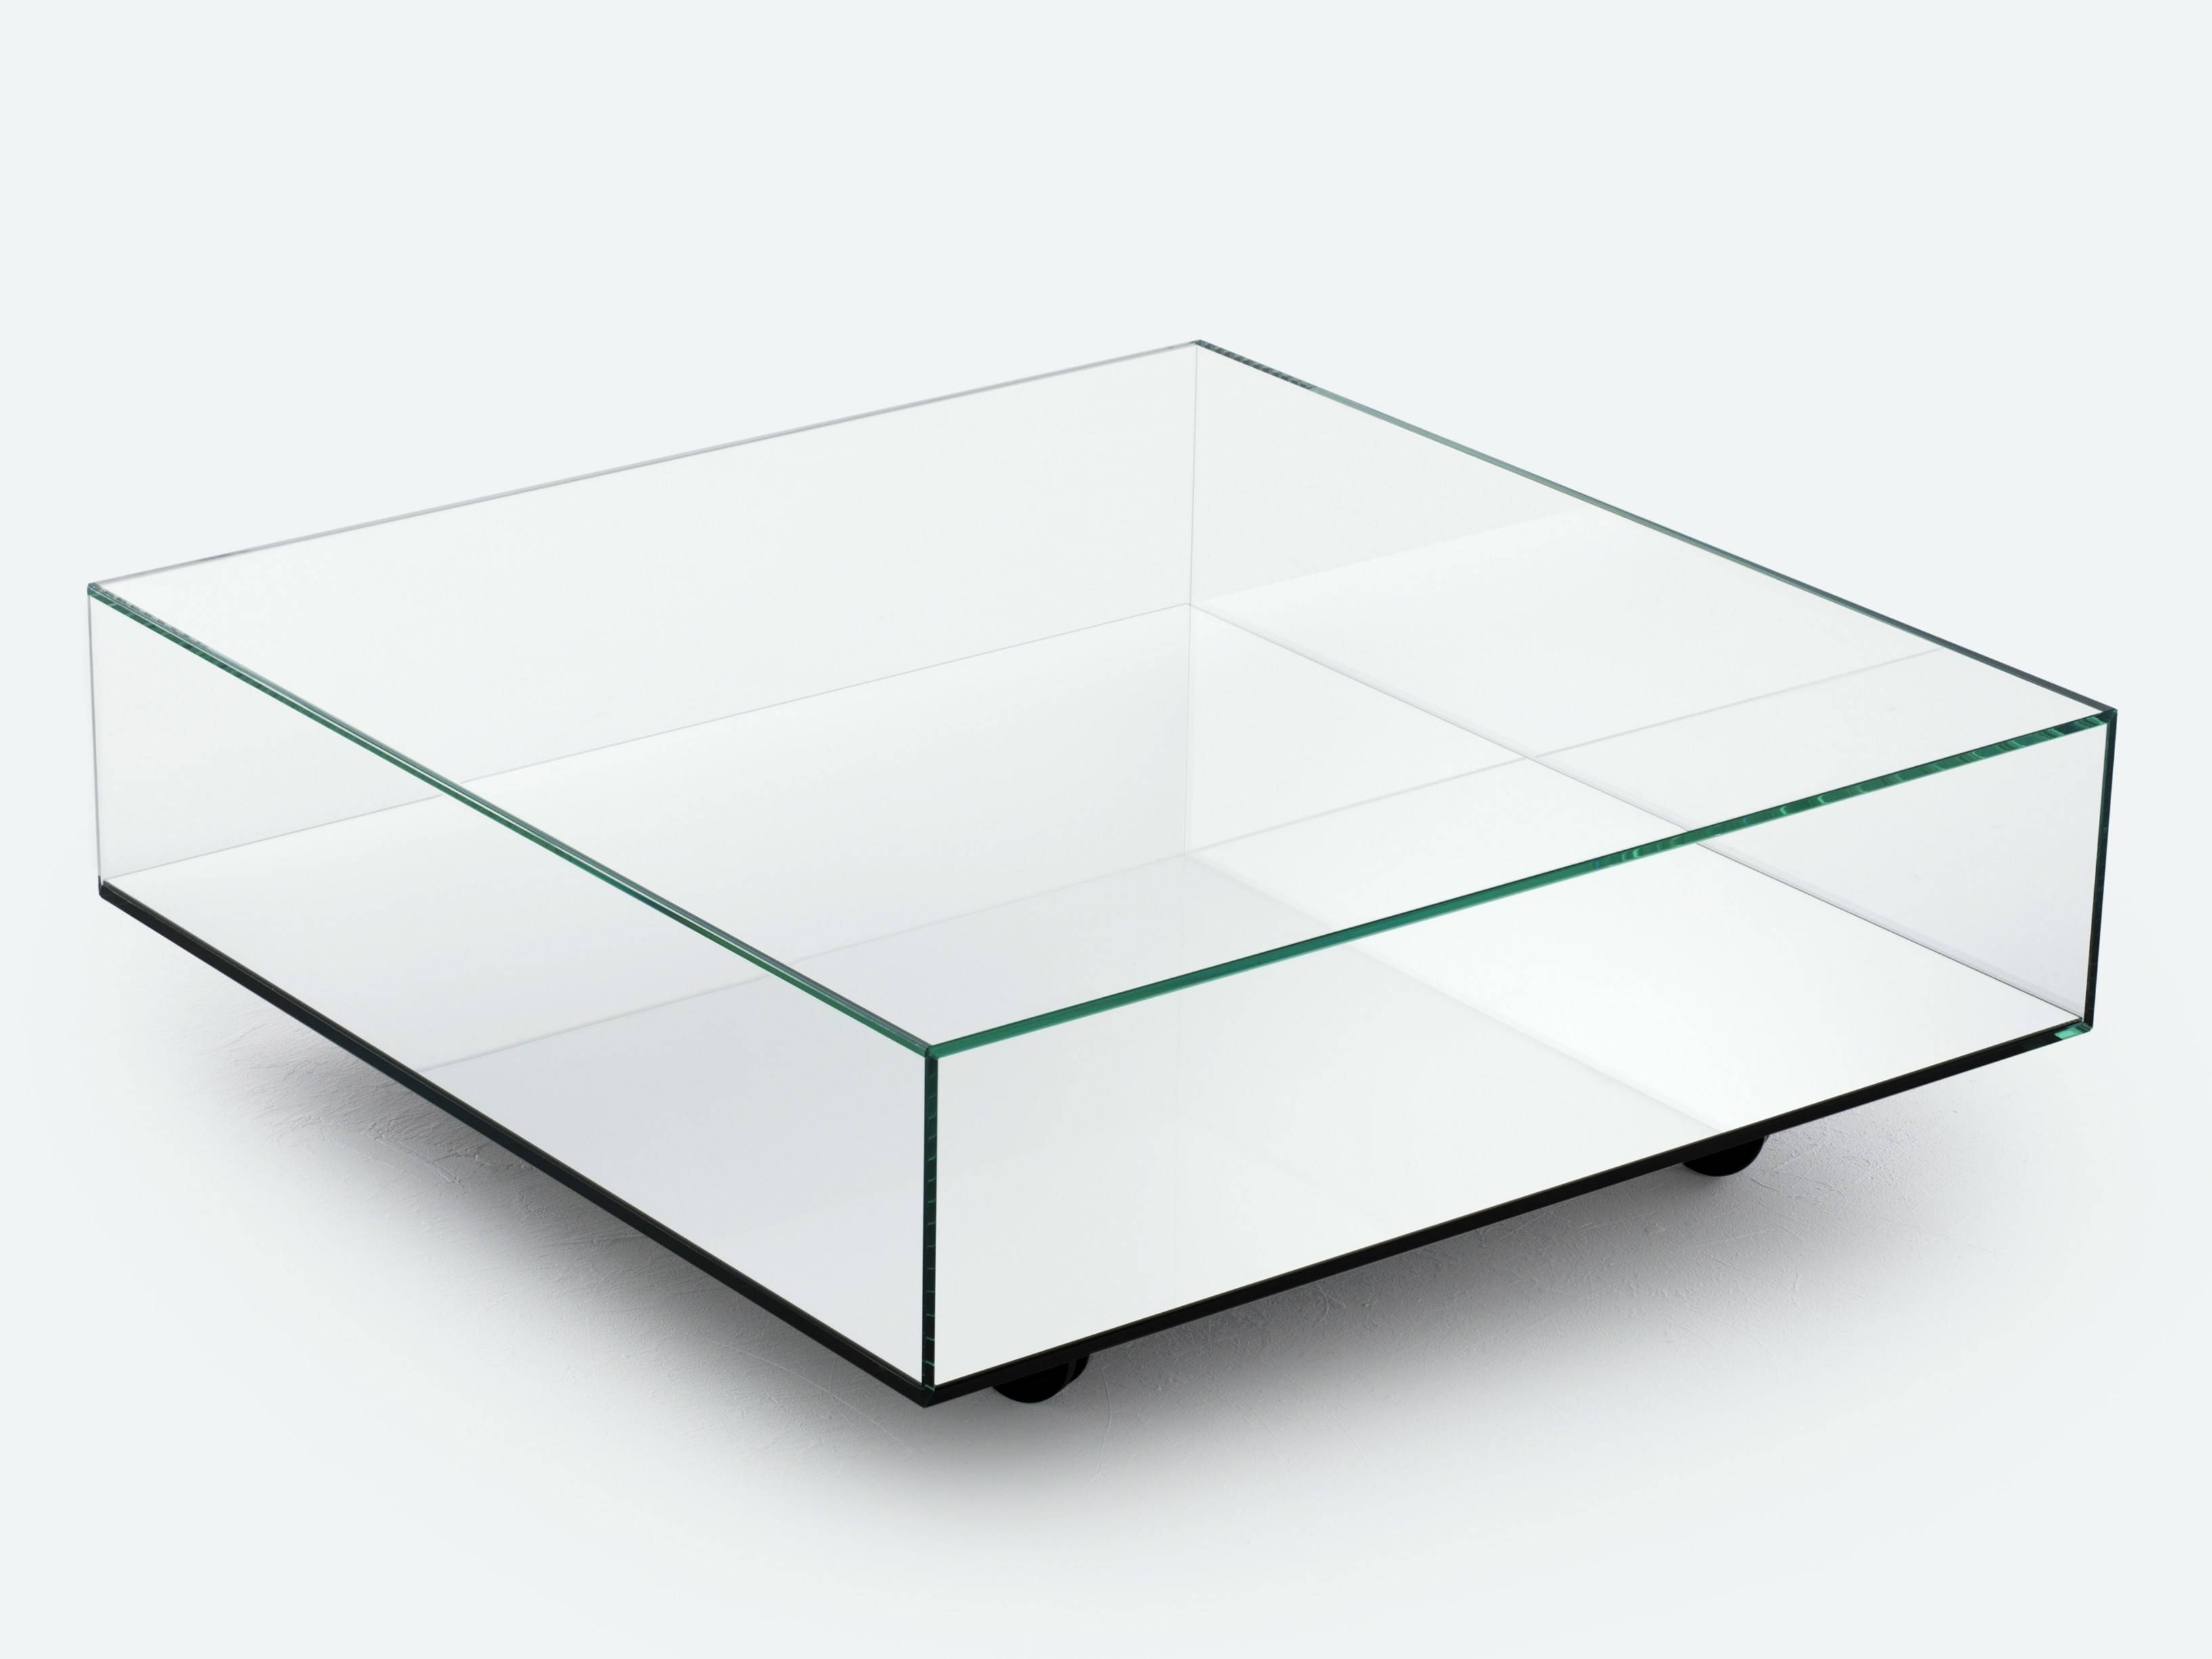 Square Low Profile Mirrored Glass Top Coffe Table With Storage And with regard to Square Low Coffee Tables (Image 19 of 20)